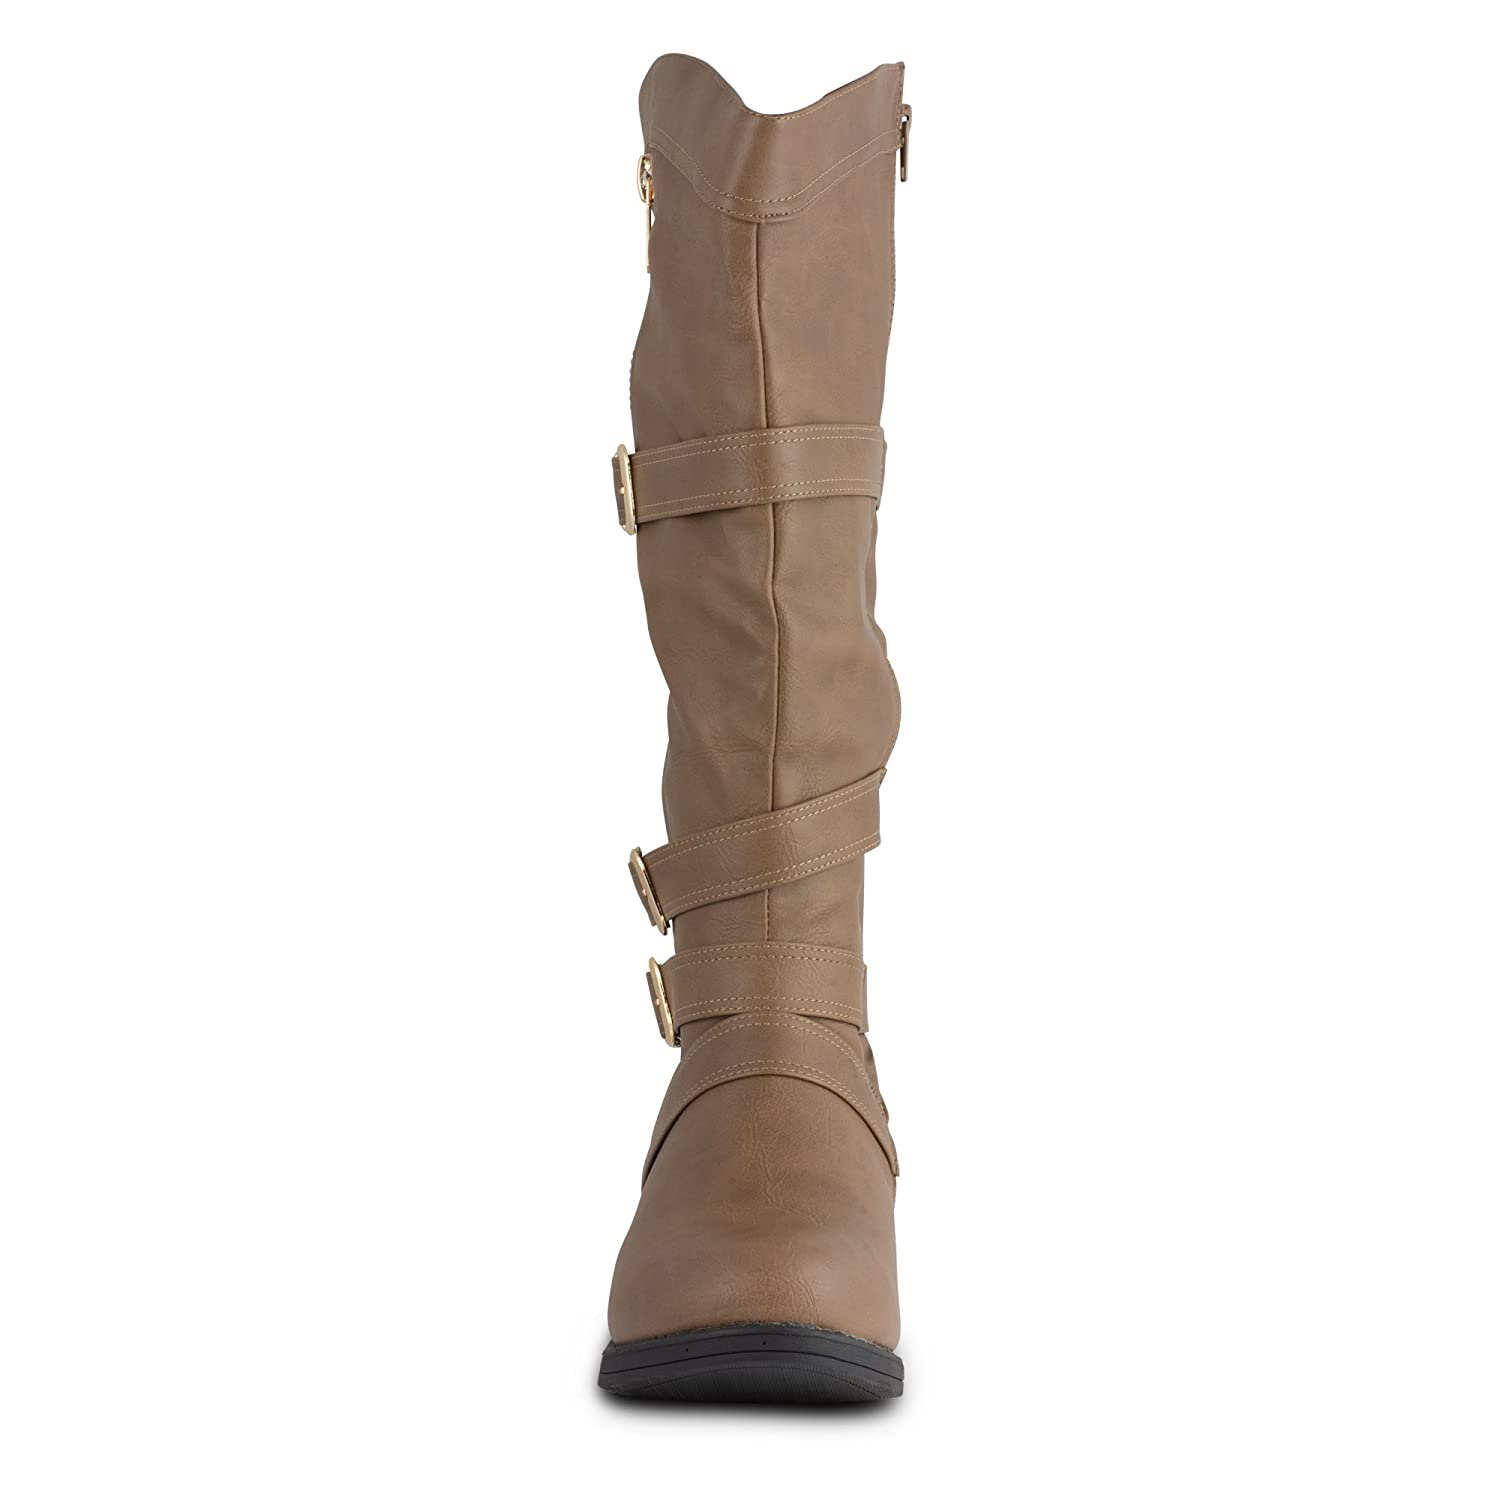 Twisted Women's AMIRA Wide Width/Wide Calf Faux Leather Knee-High Western Flat Riding Boot with Multi Buckle Straps B00M3FMM0G 11 C/D US|Taupe